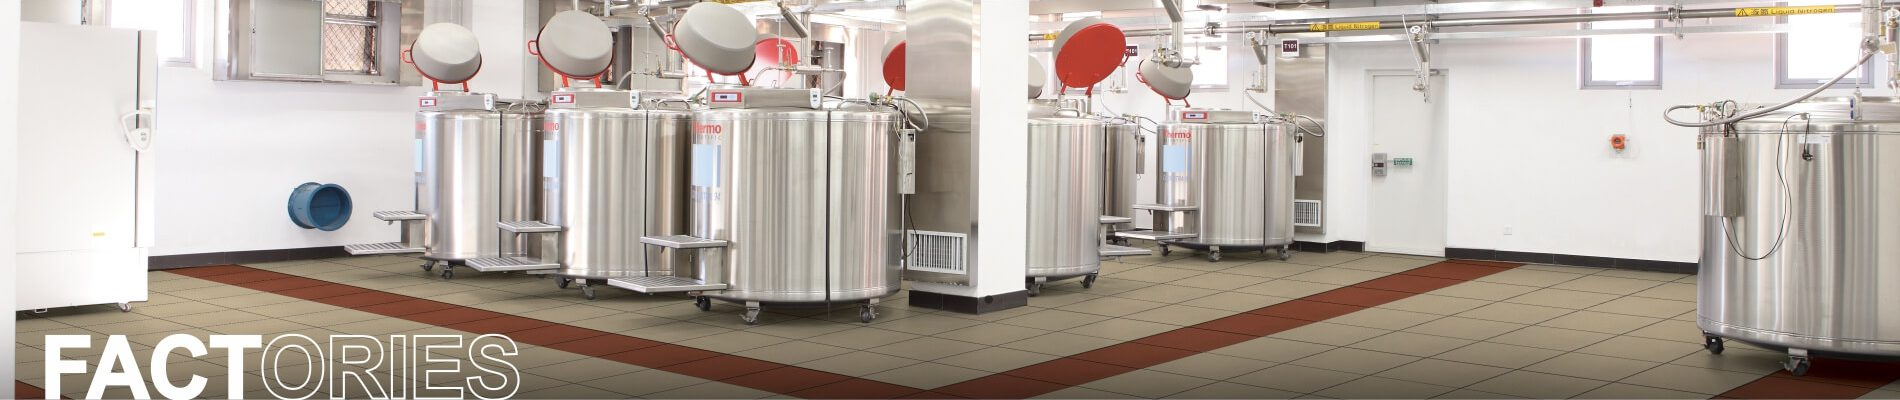 industrial floor tiles manufacturers